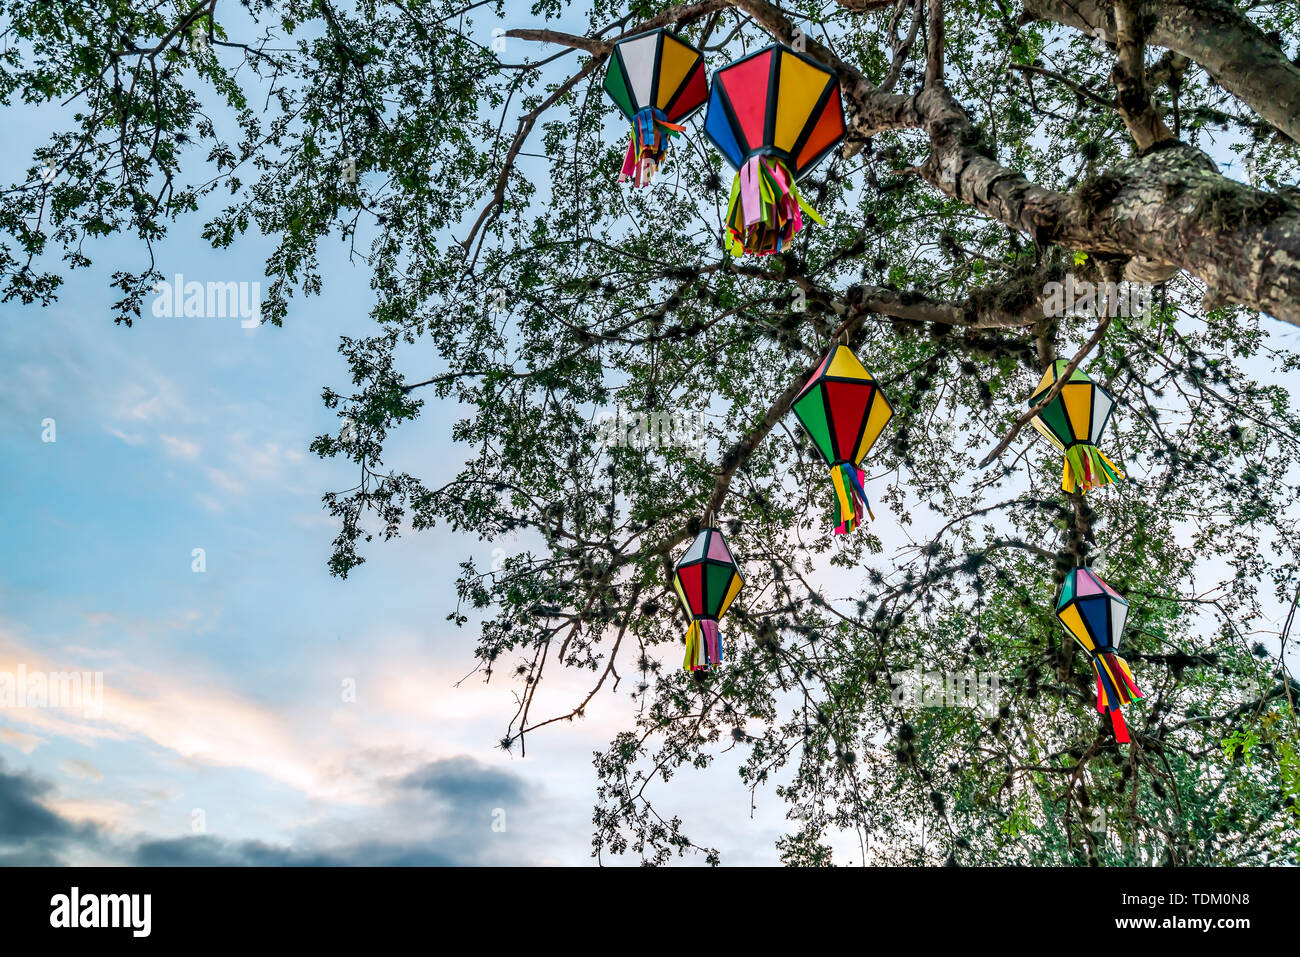 Festa Junina, Sao Joao, Party with colorful Flags and Balloons it happens in June, mostly in Northeast of Brazil. - Stock Image